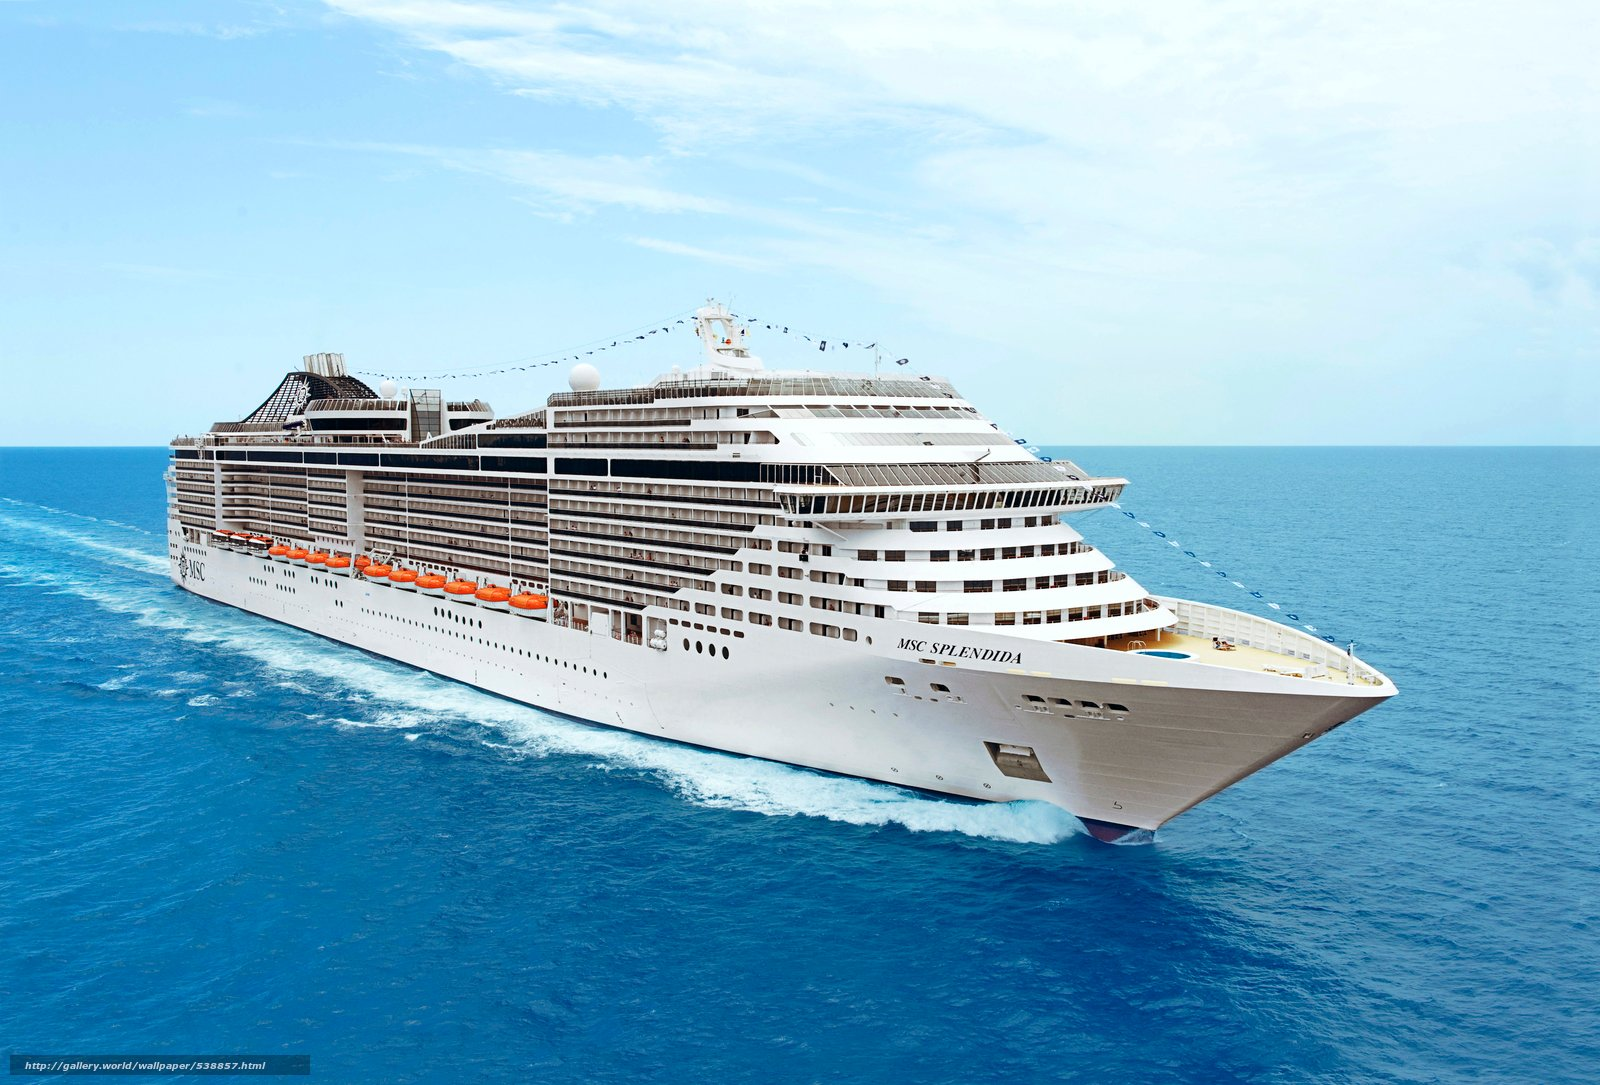 Download wallpaper MSC Splendida Cruise Ship desktop wallpaper 1600x1085